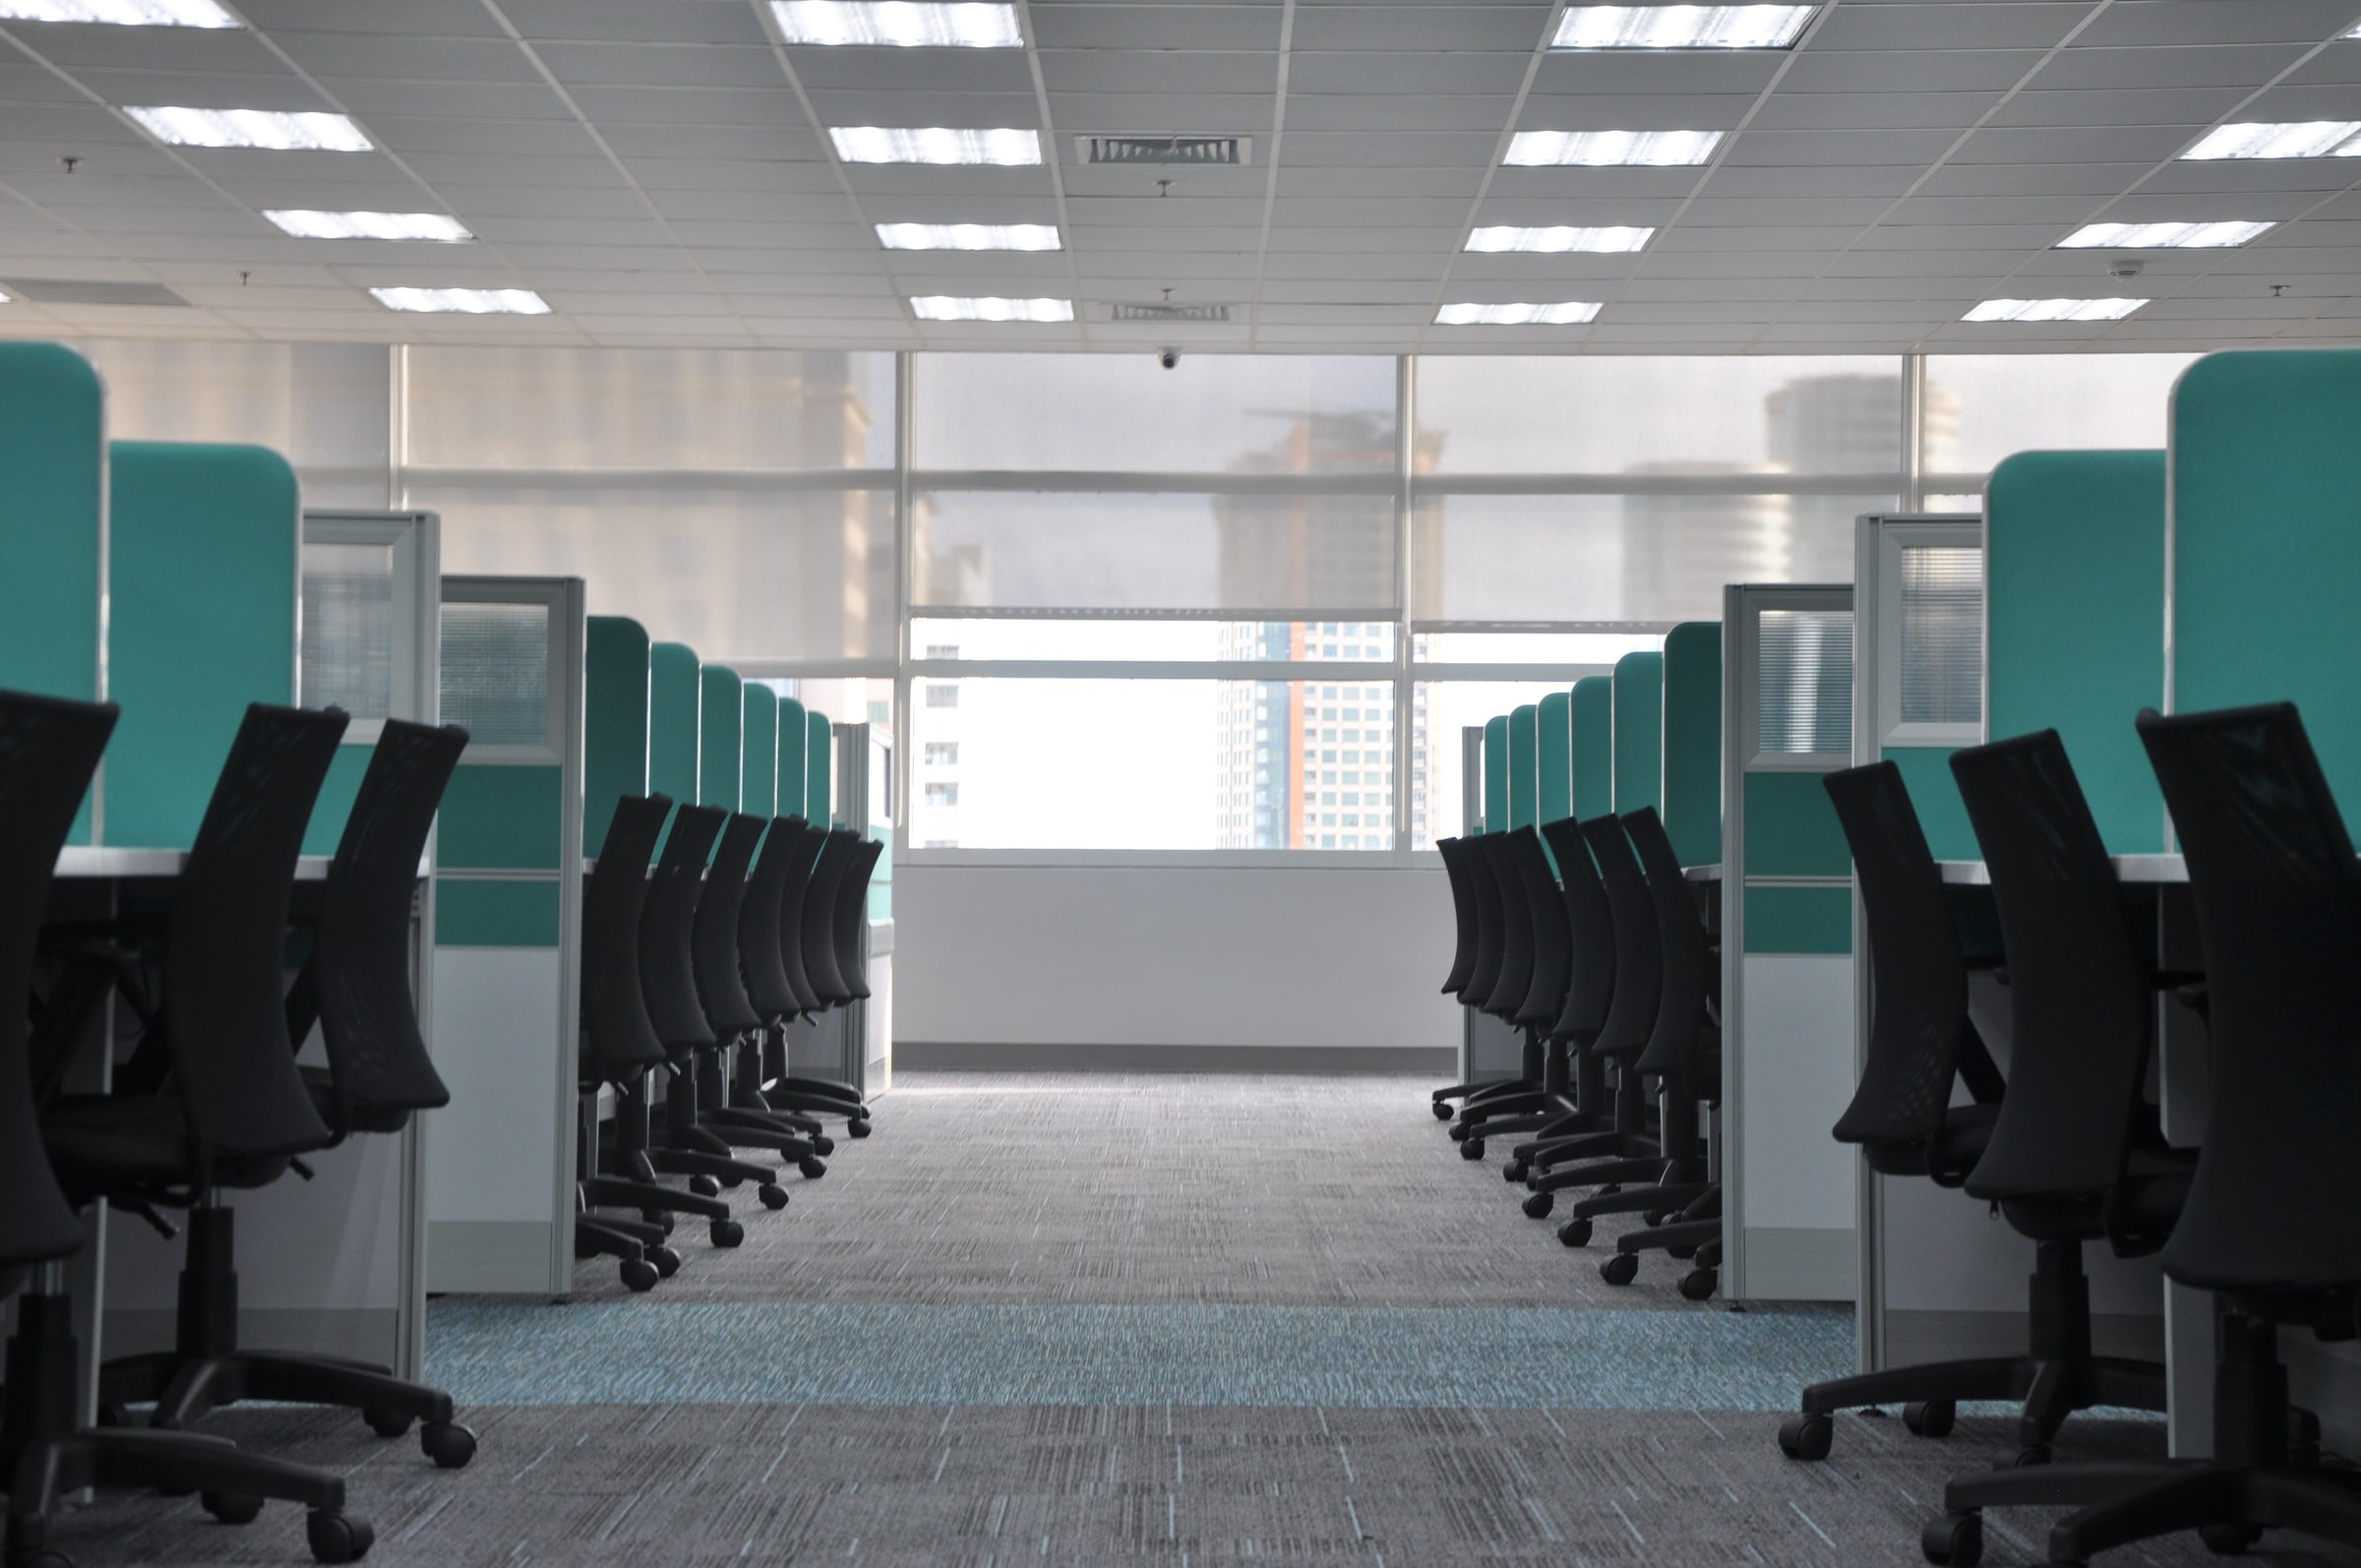 An open space room with two rows of cubicles